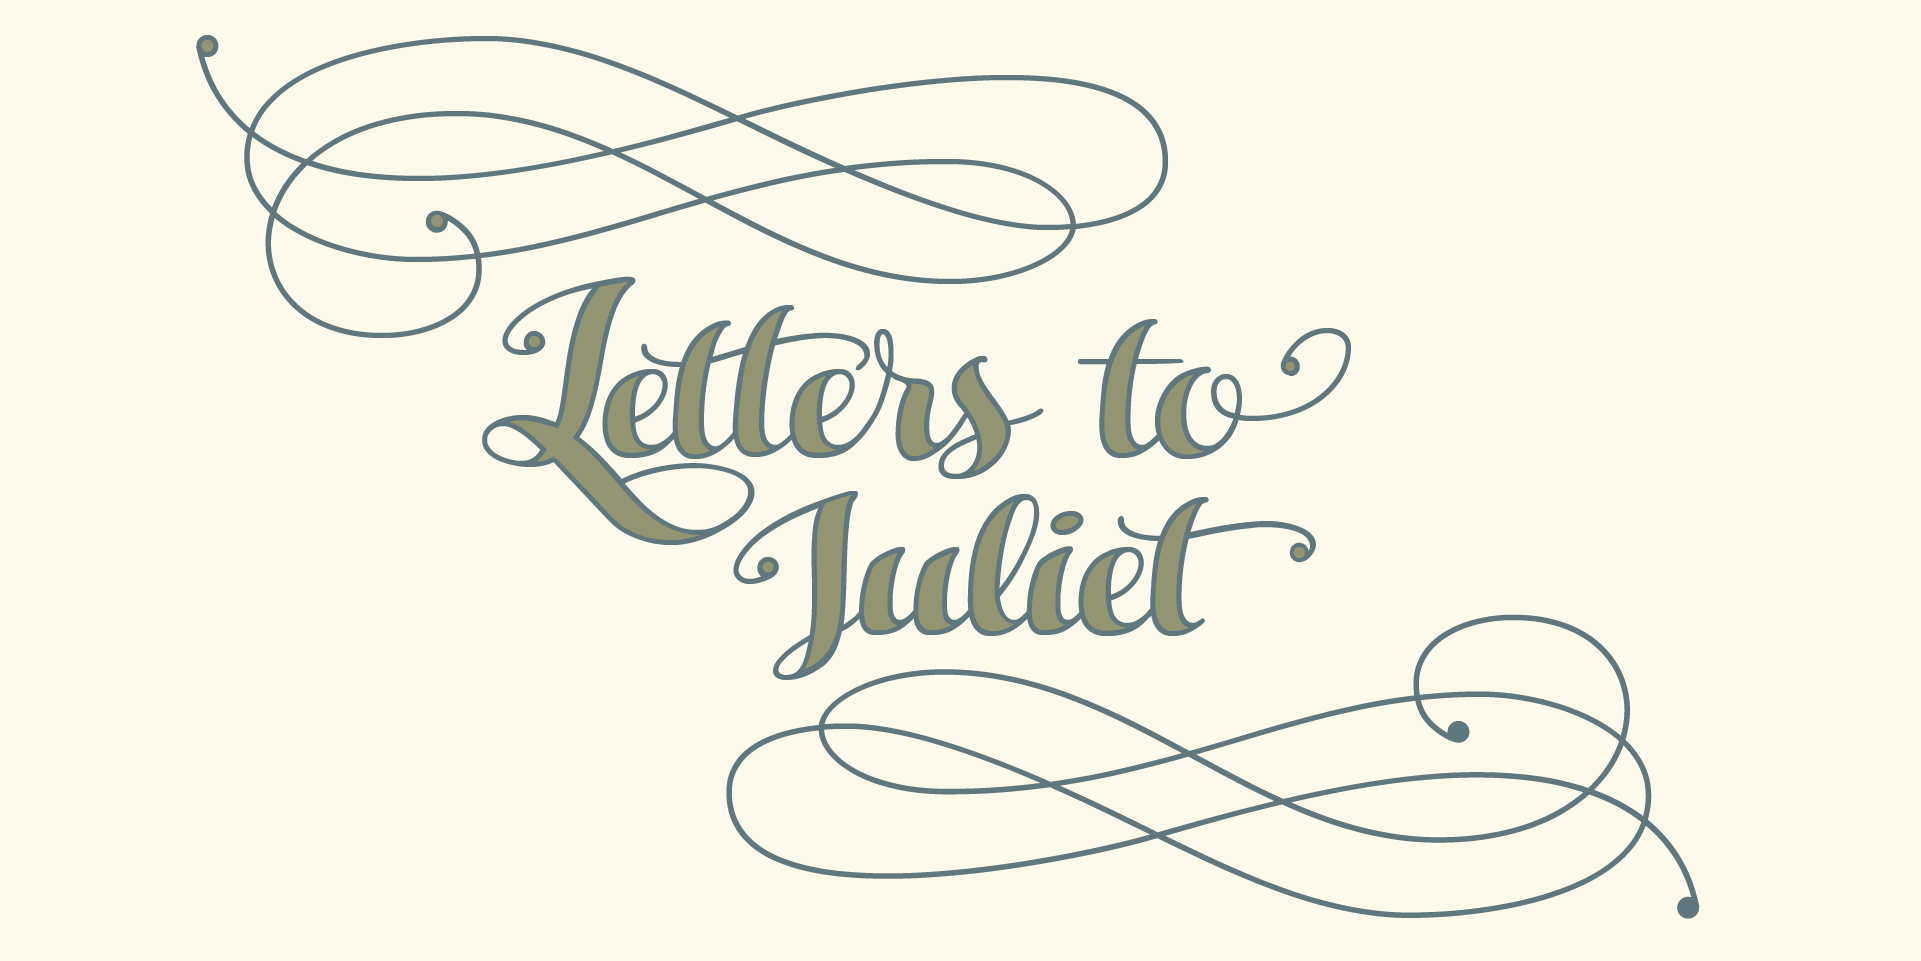 HelloLetters